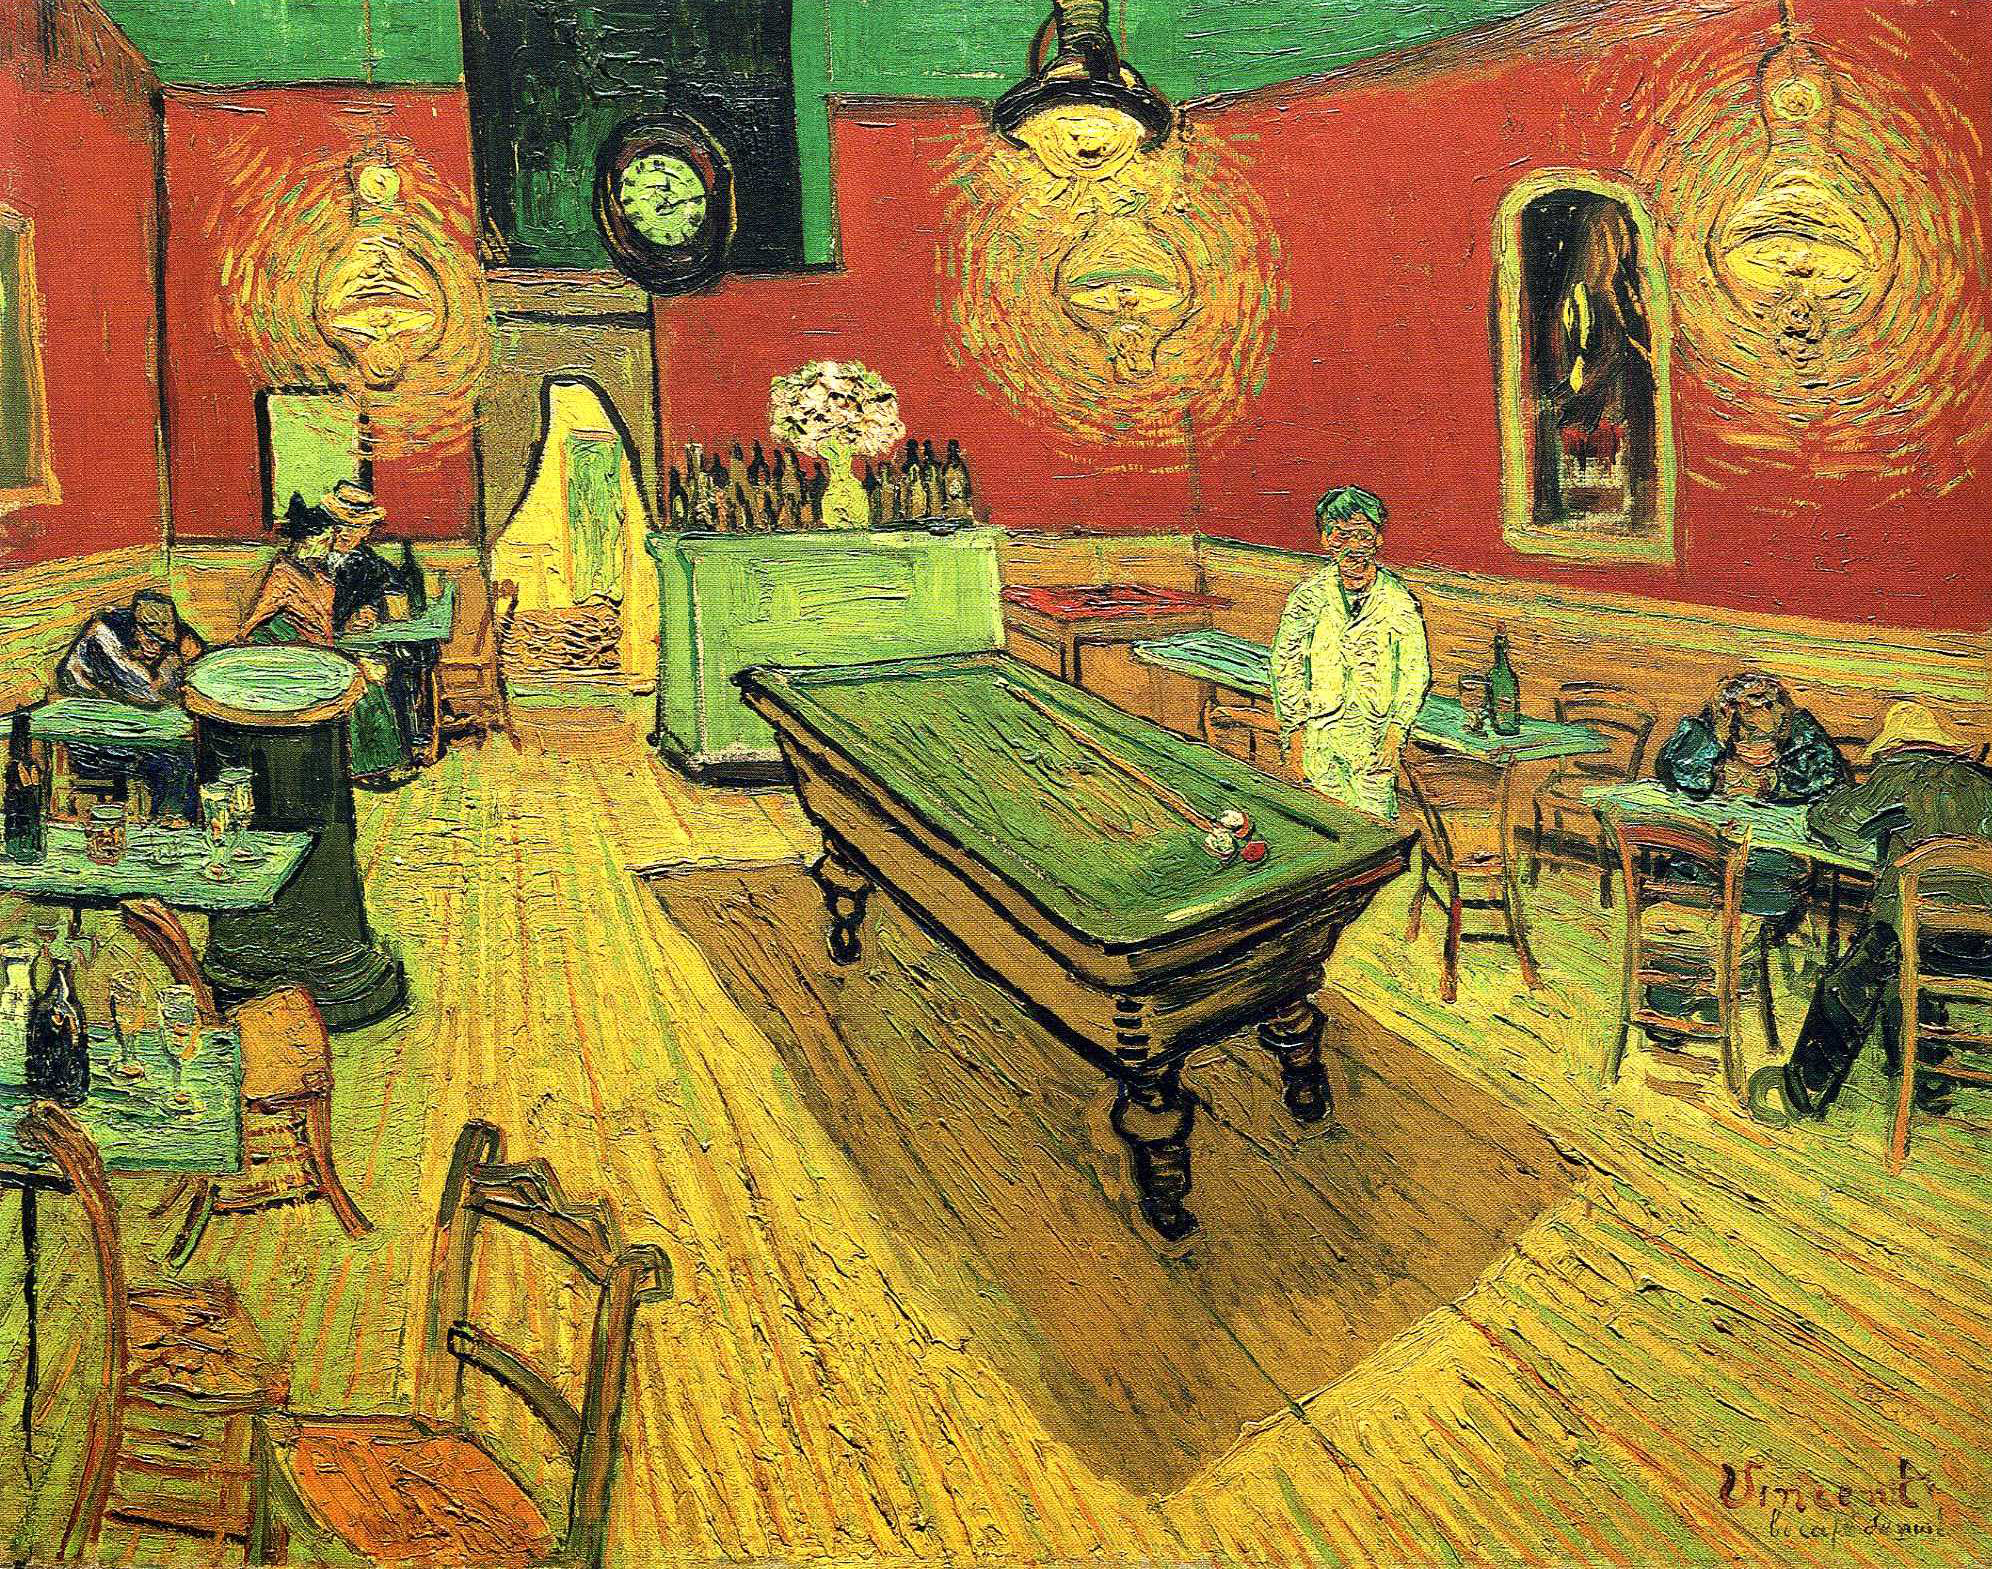 Vincent Van Gogh, Night Cafe, 1888. Oil on canvas. Yale University Art Gallery, Connecticut